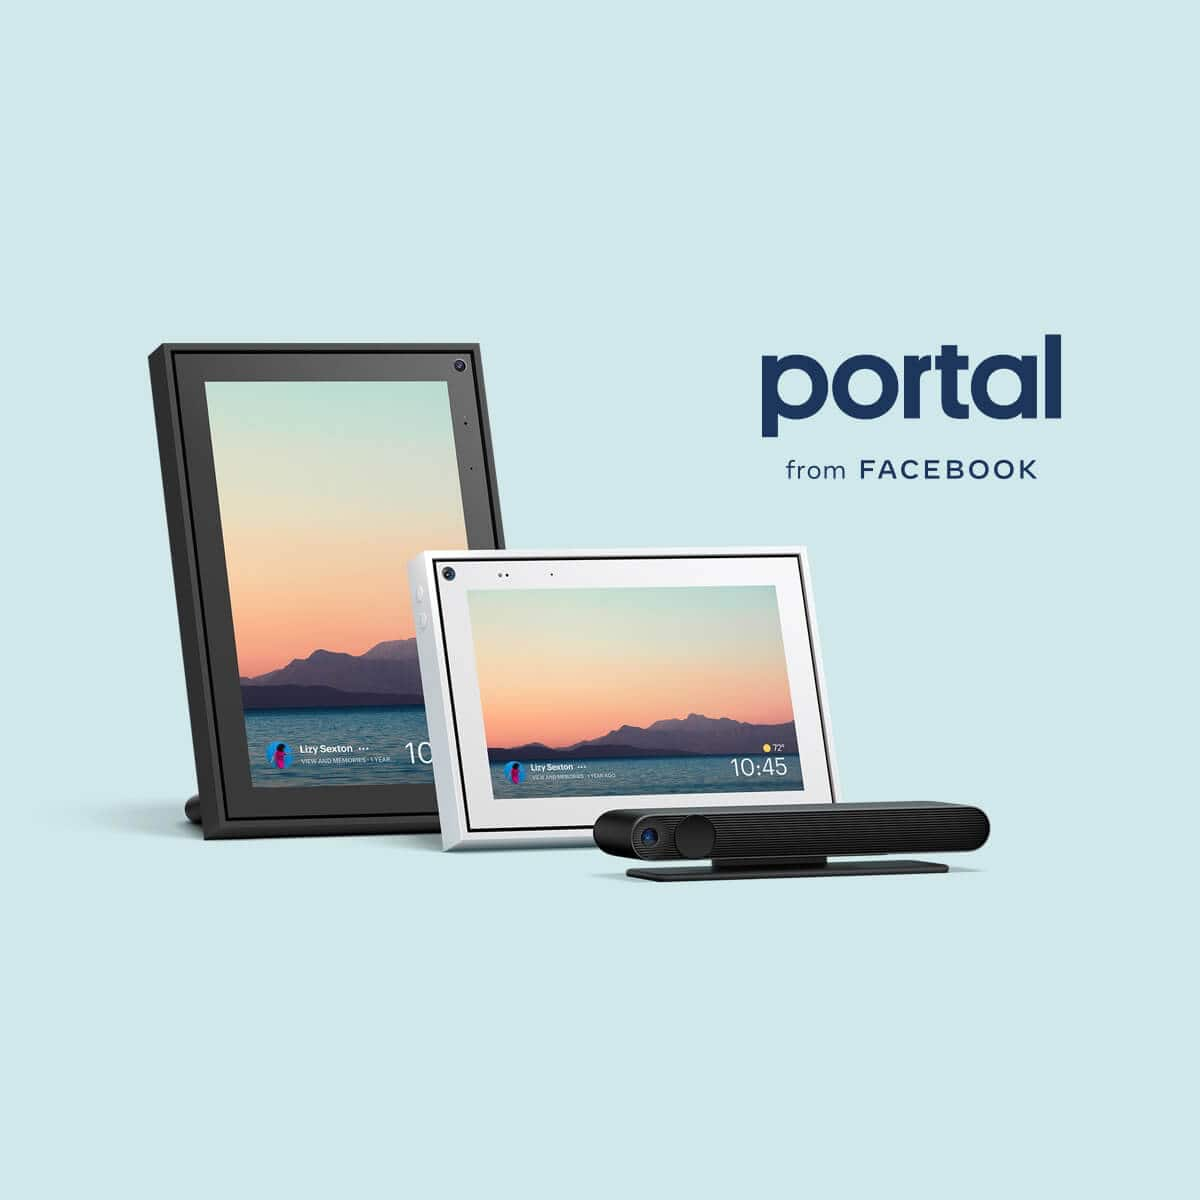 Portal From Facebook: Starting at $65 + Free Shipping. Valid Through 11/8